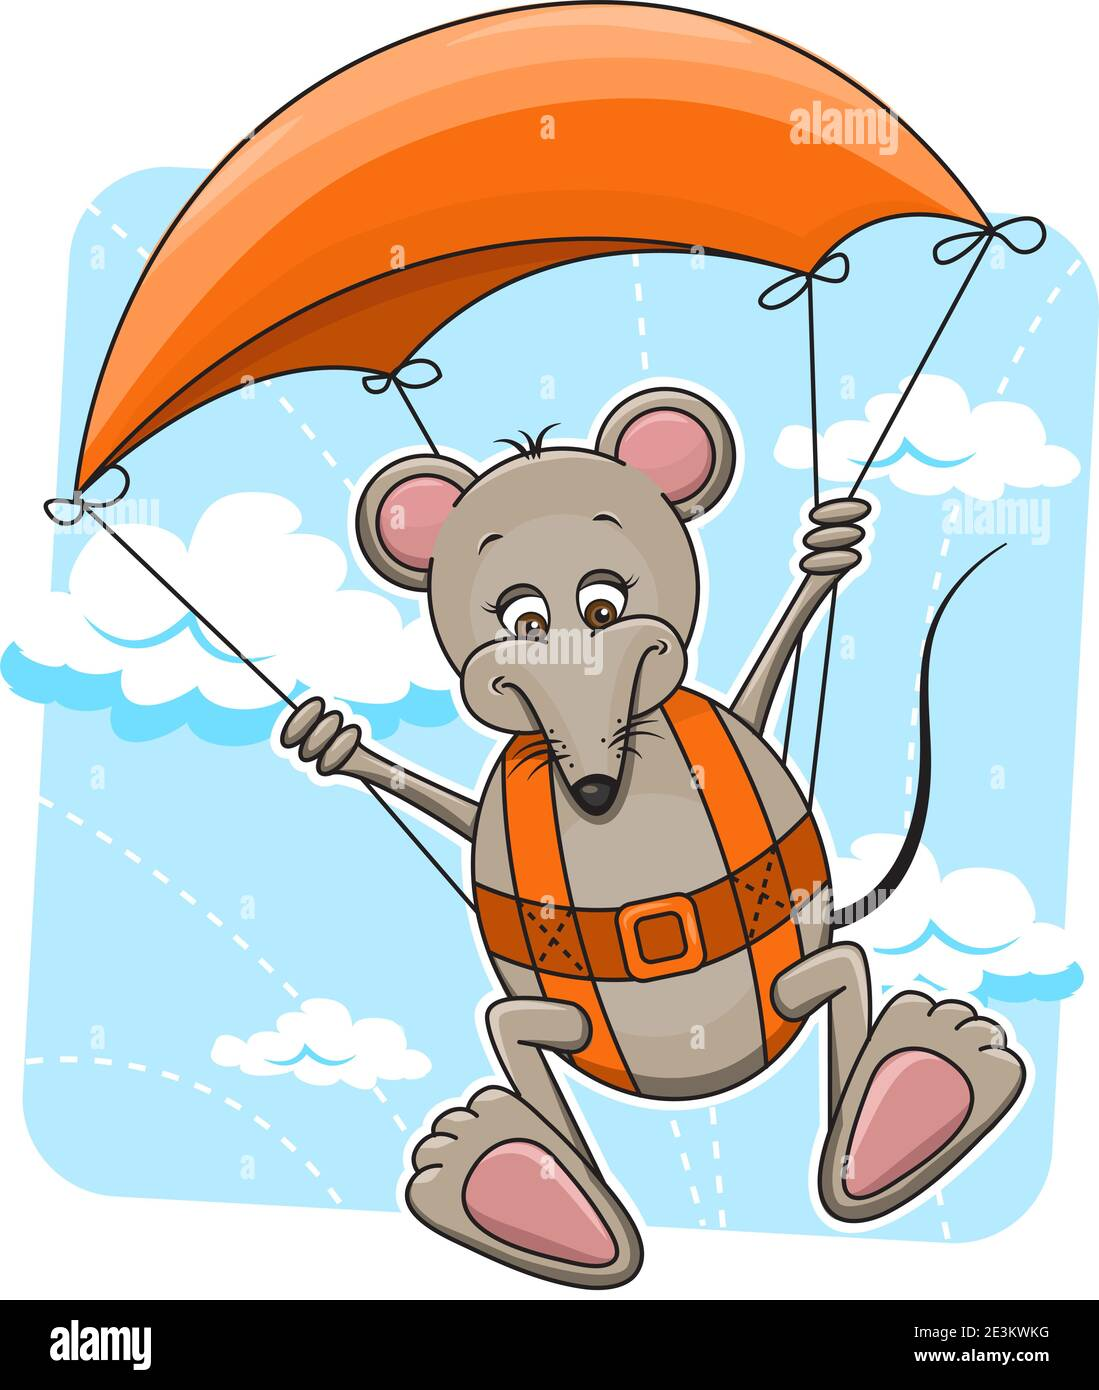 Cute cartoon vector illustration of Mouse flying on the parachute. Stock Vector